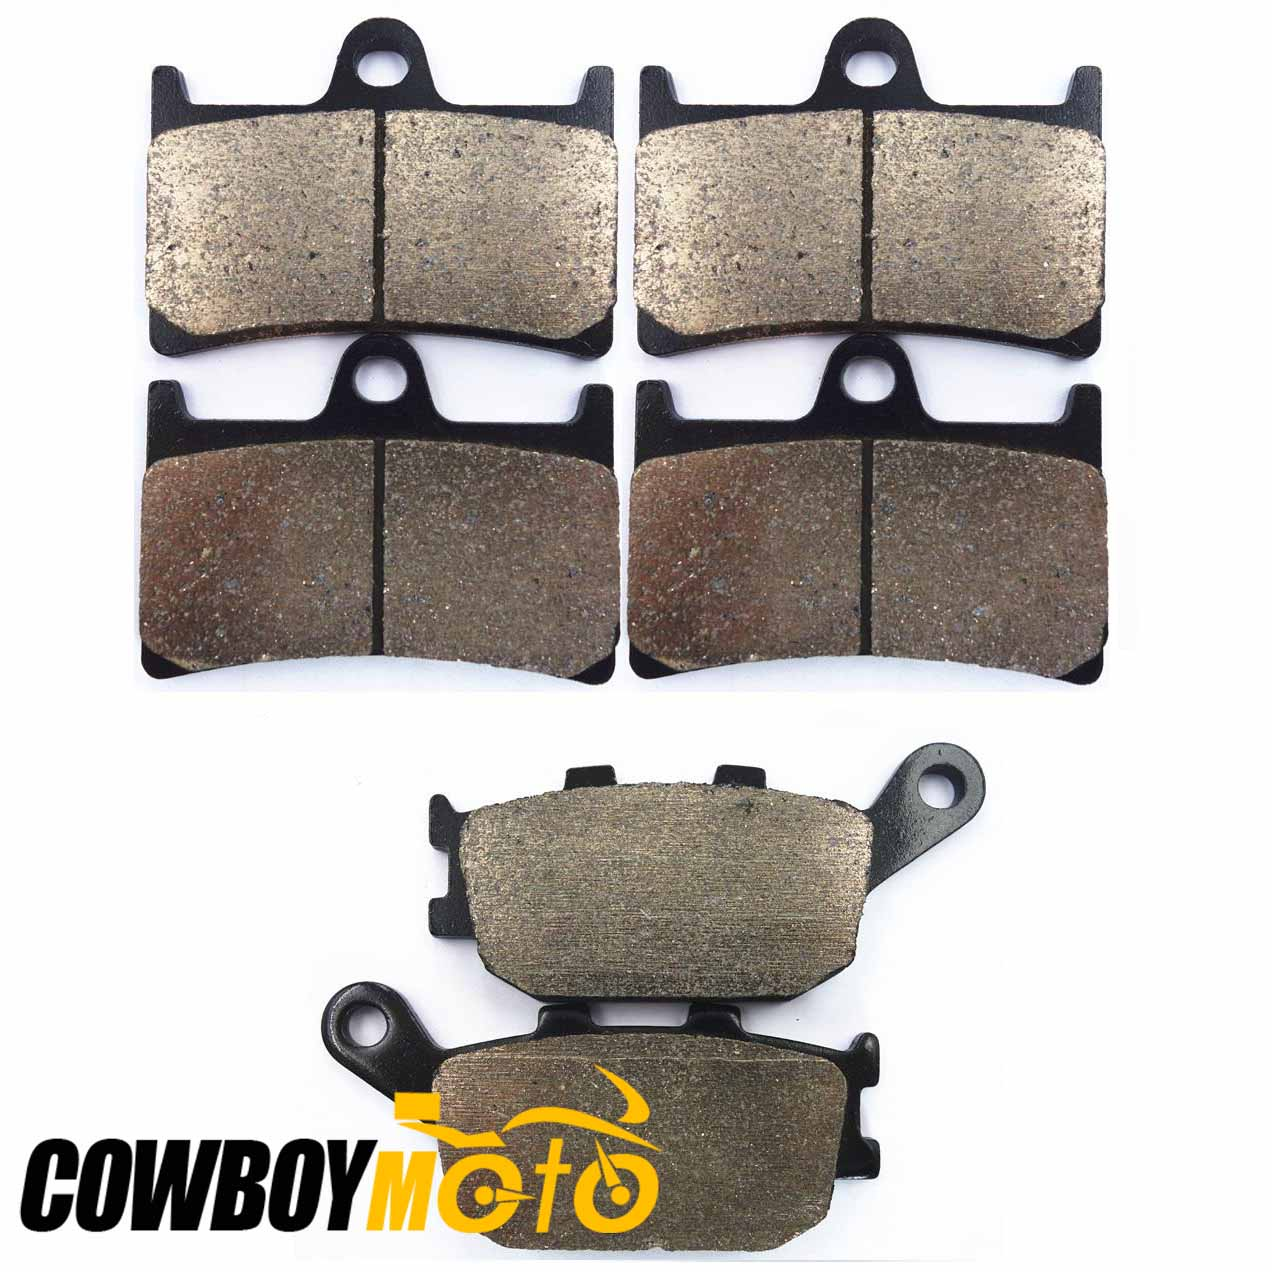 Motorcycle Sintered Set Semi-Metallic Brake Pads Set fit For YAMAHA 600 FZ6 Fazer S2 600 FZ6 Fa 2007 2008 2009 aftermarket free shipping motorcycle parts eliminator tidy tail for 2006 2007 2008 fz6 fazer 2007 2008b lack